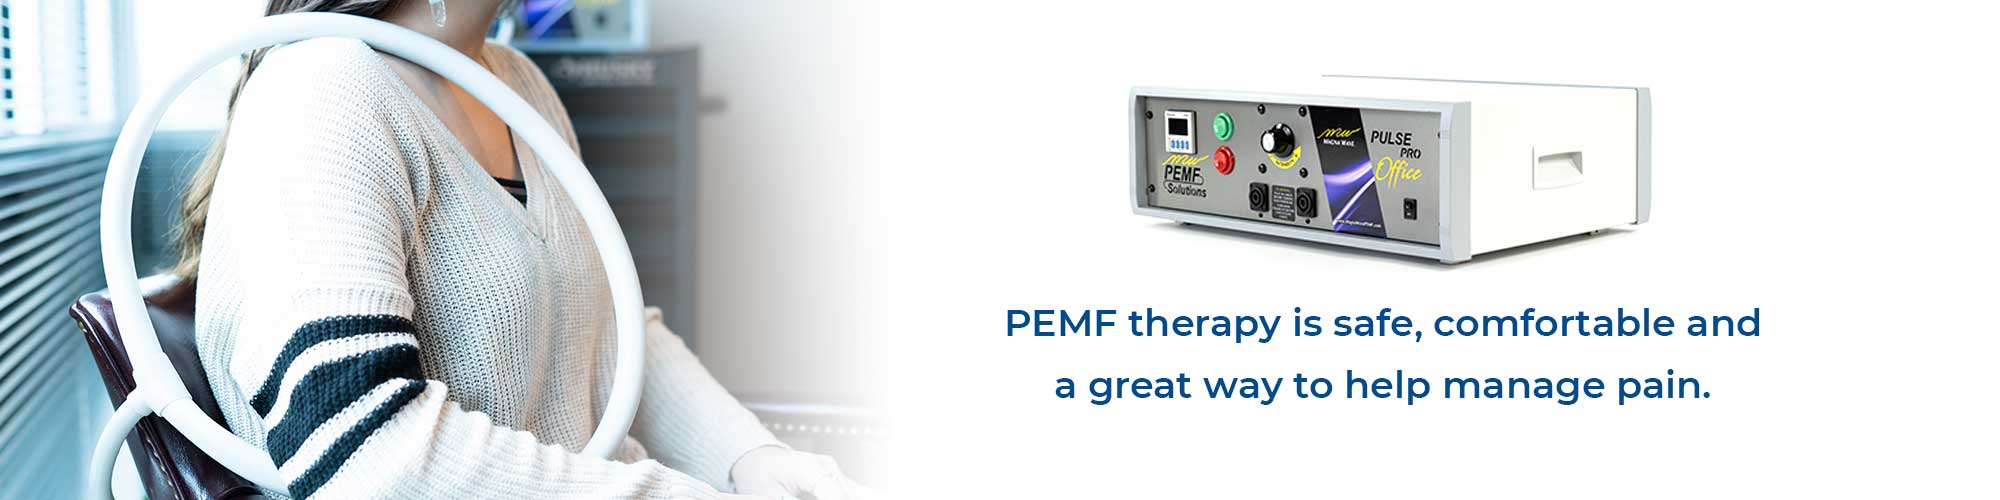 PEMF therapy is safe, comfortable and a great way to help manage pain.